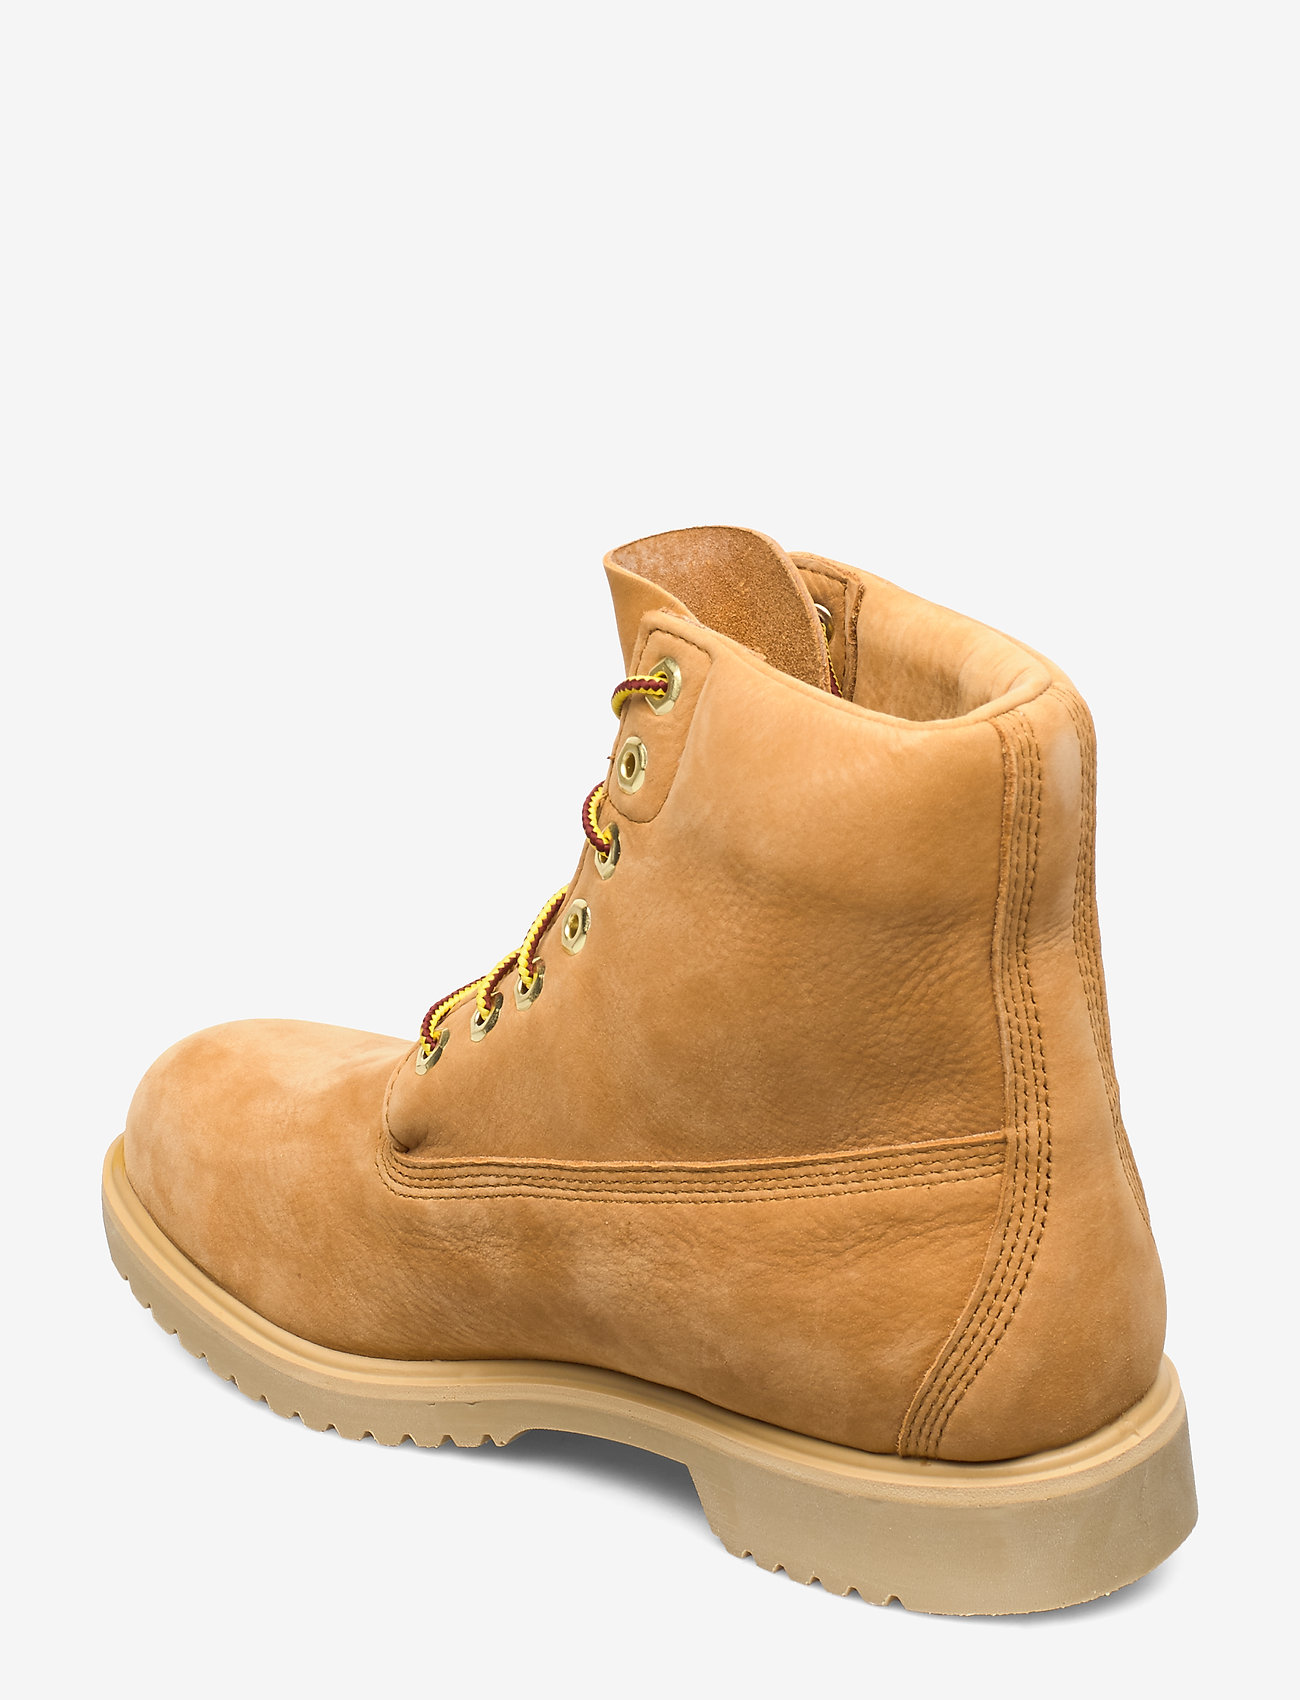 "Tbl 1973 Newman6"" Boot Wp (Wheat) - Timberland"